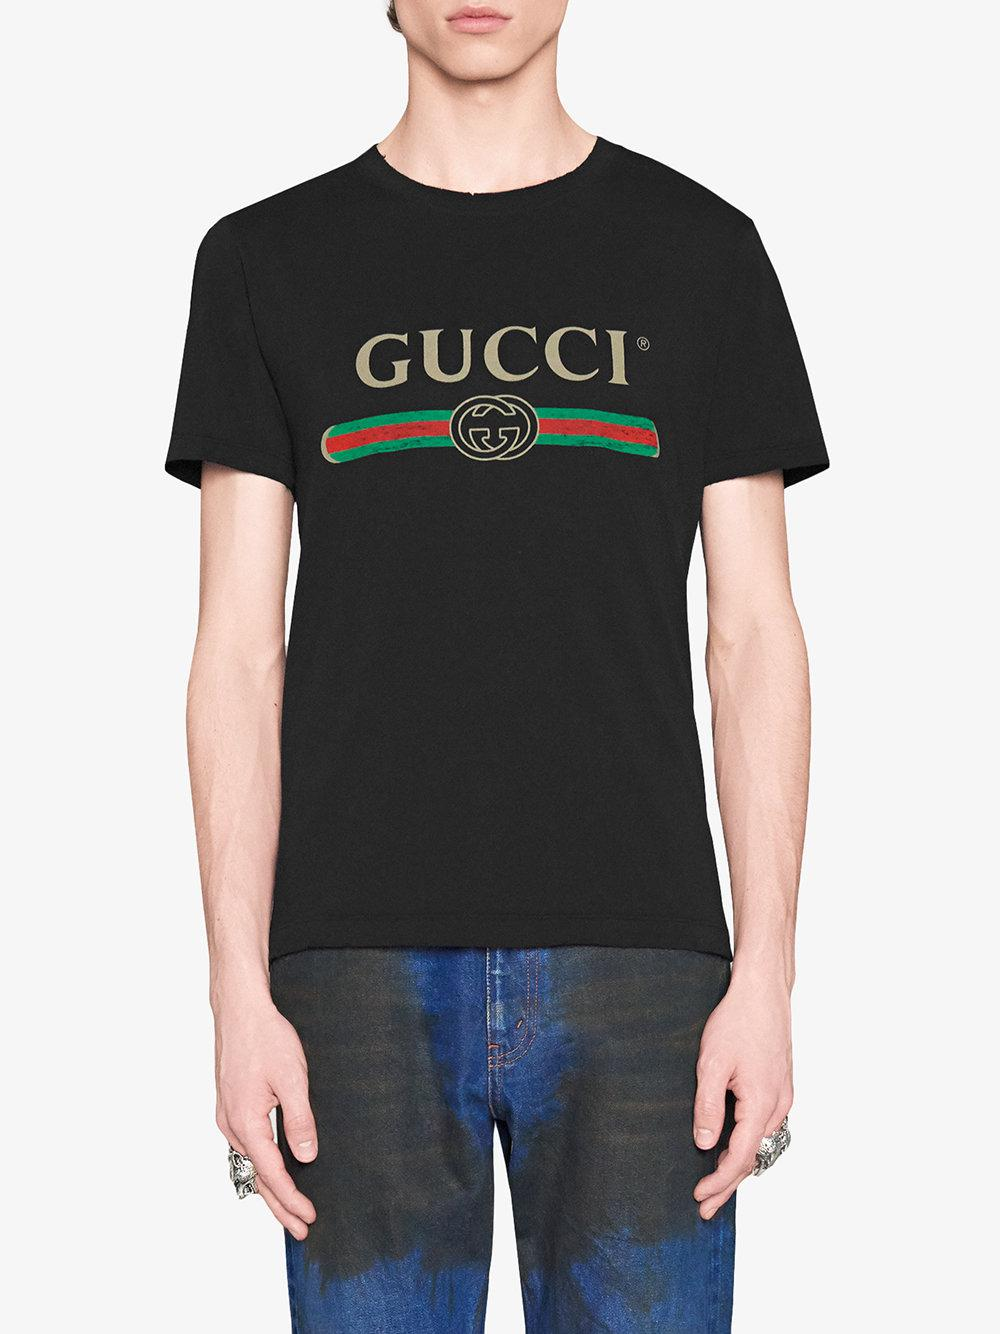 d4487b32b5182 Gucci - Black Oversize Washed T-shirt With Logo for Men - Lyst. View  fullscreen